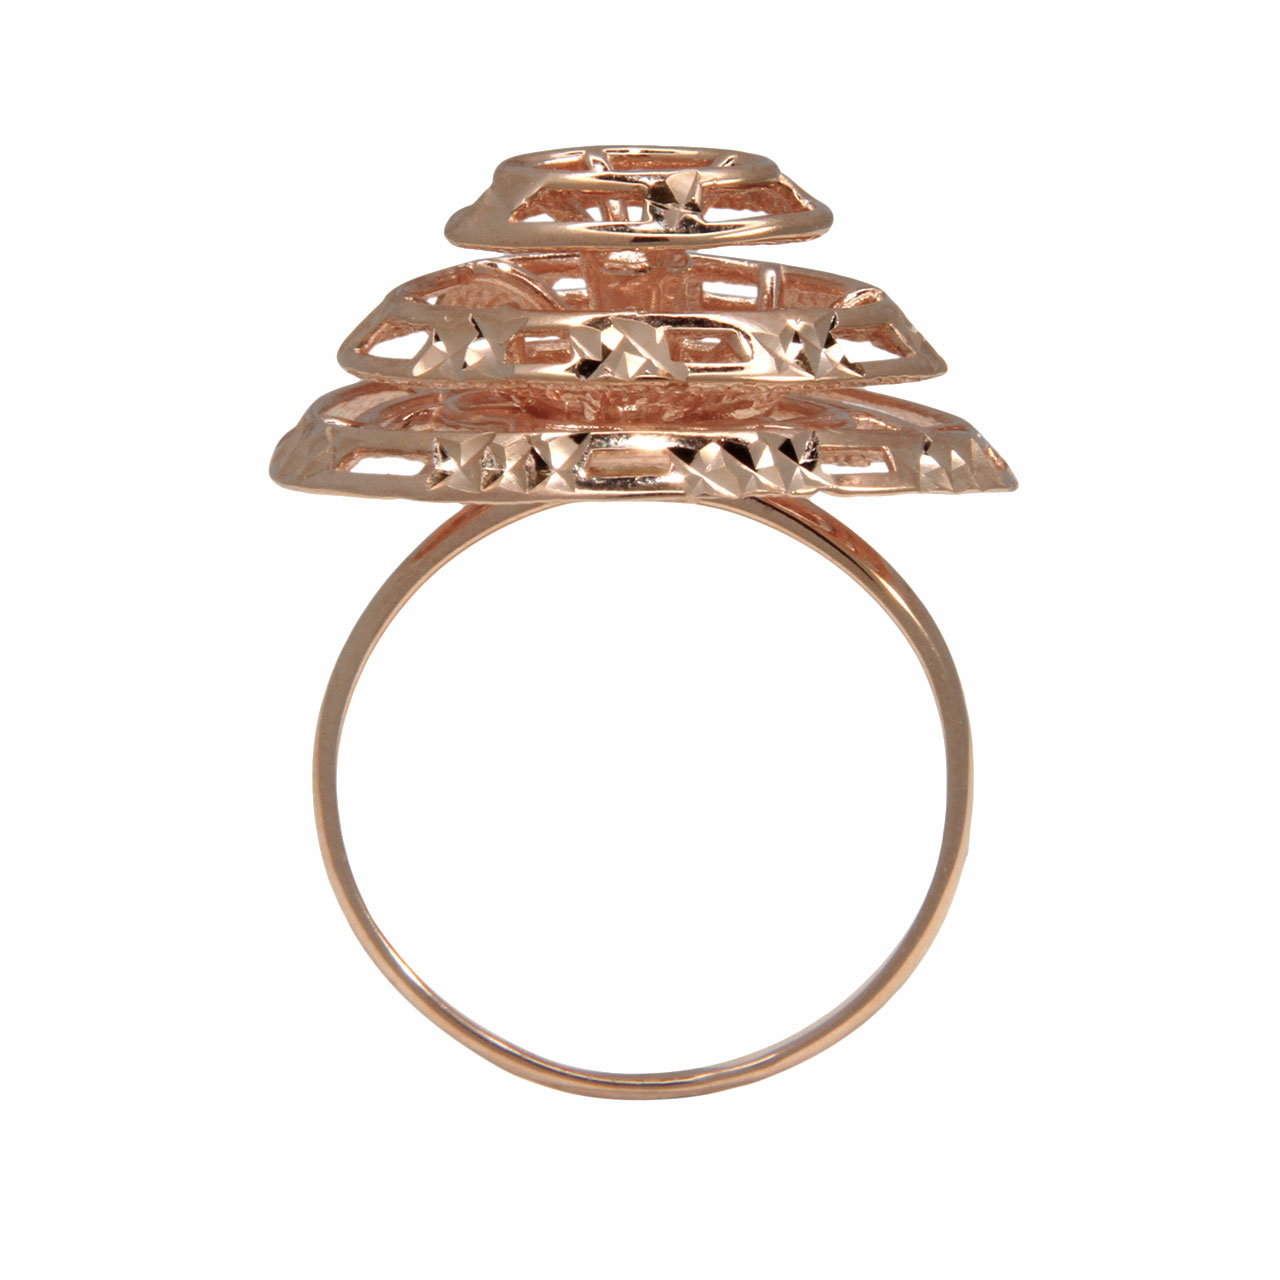 Designer rose gold ring 3